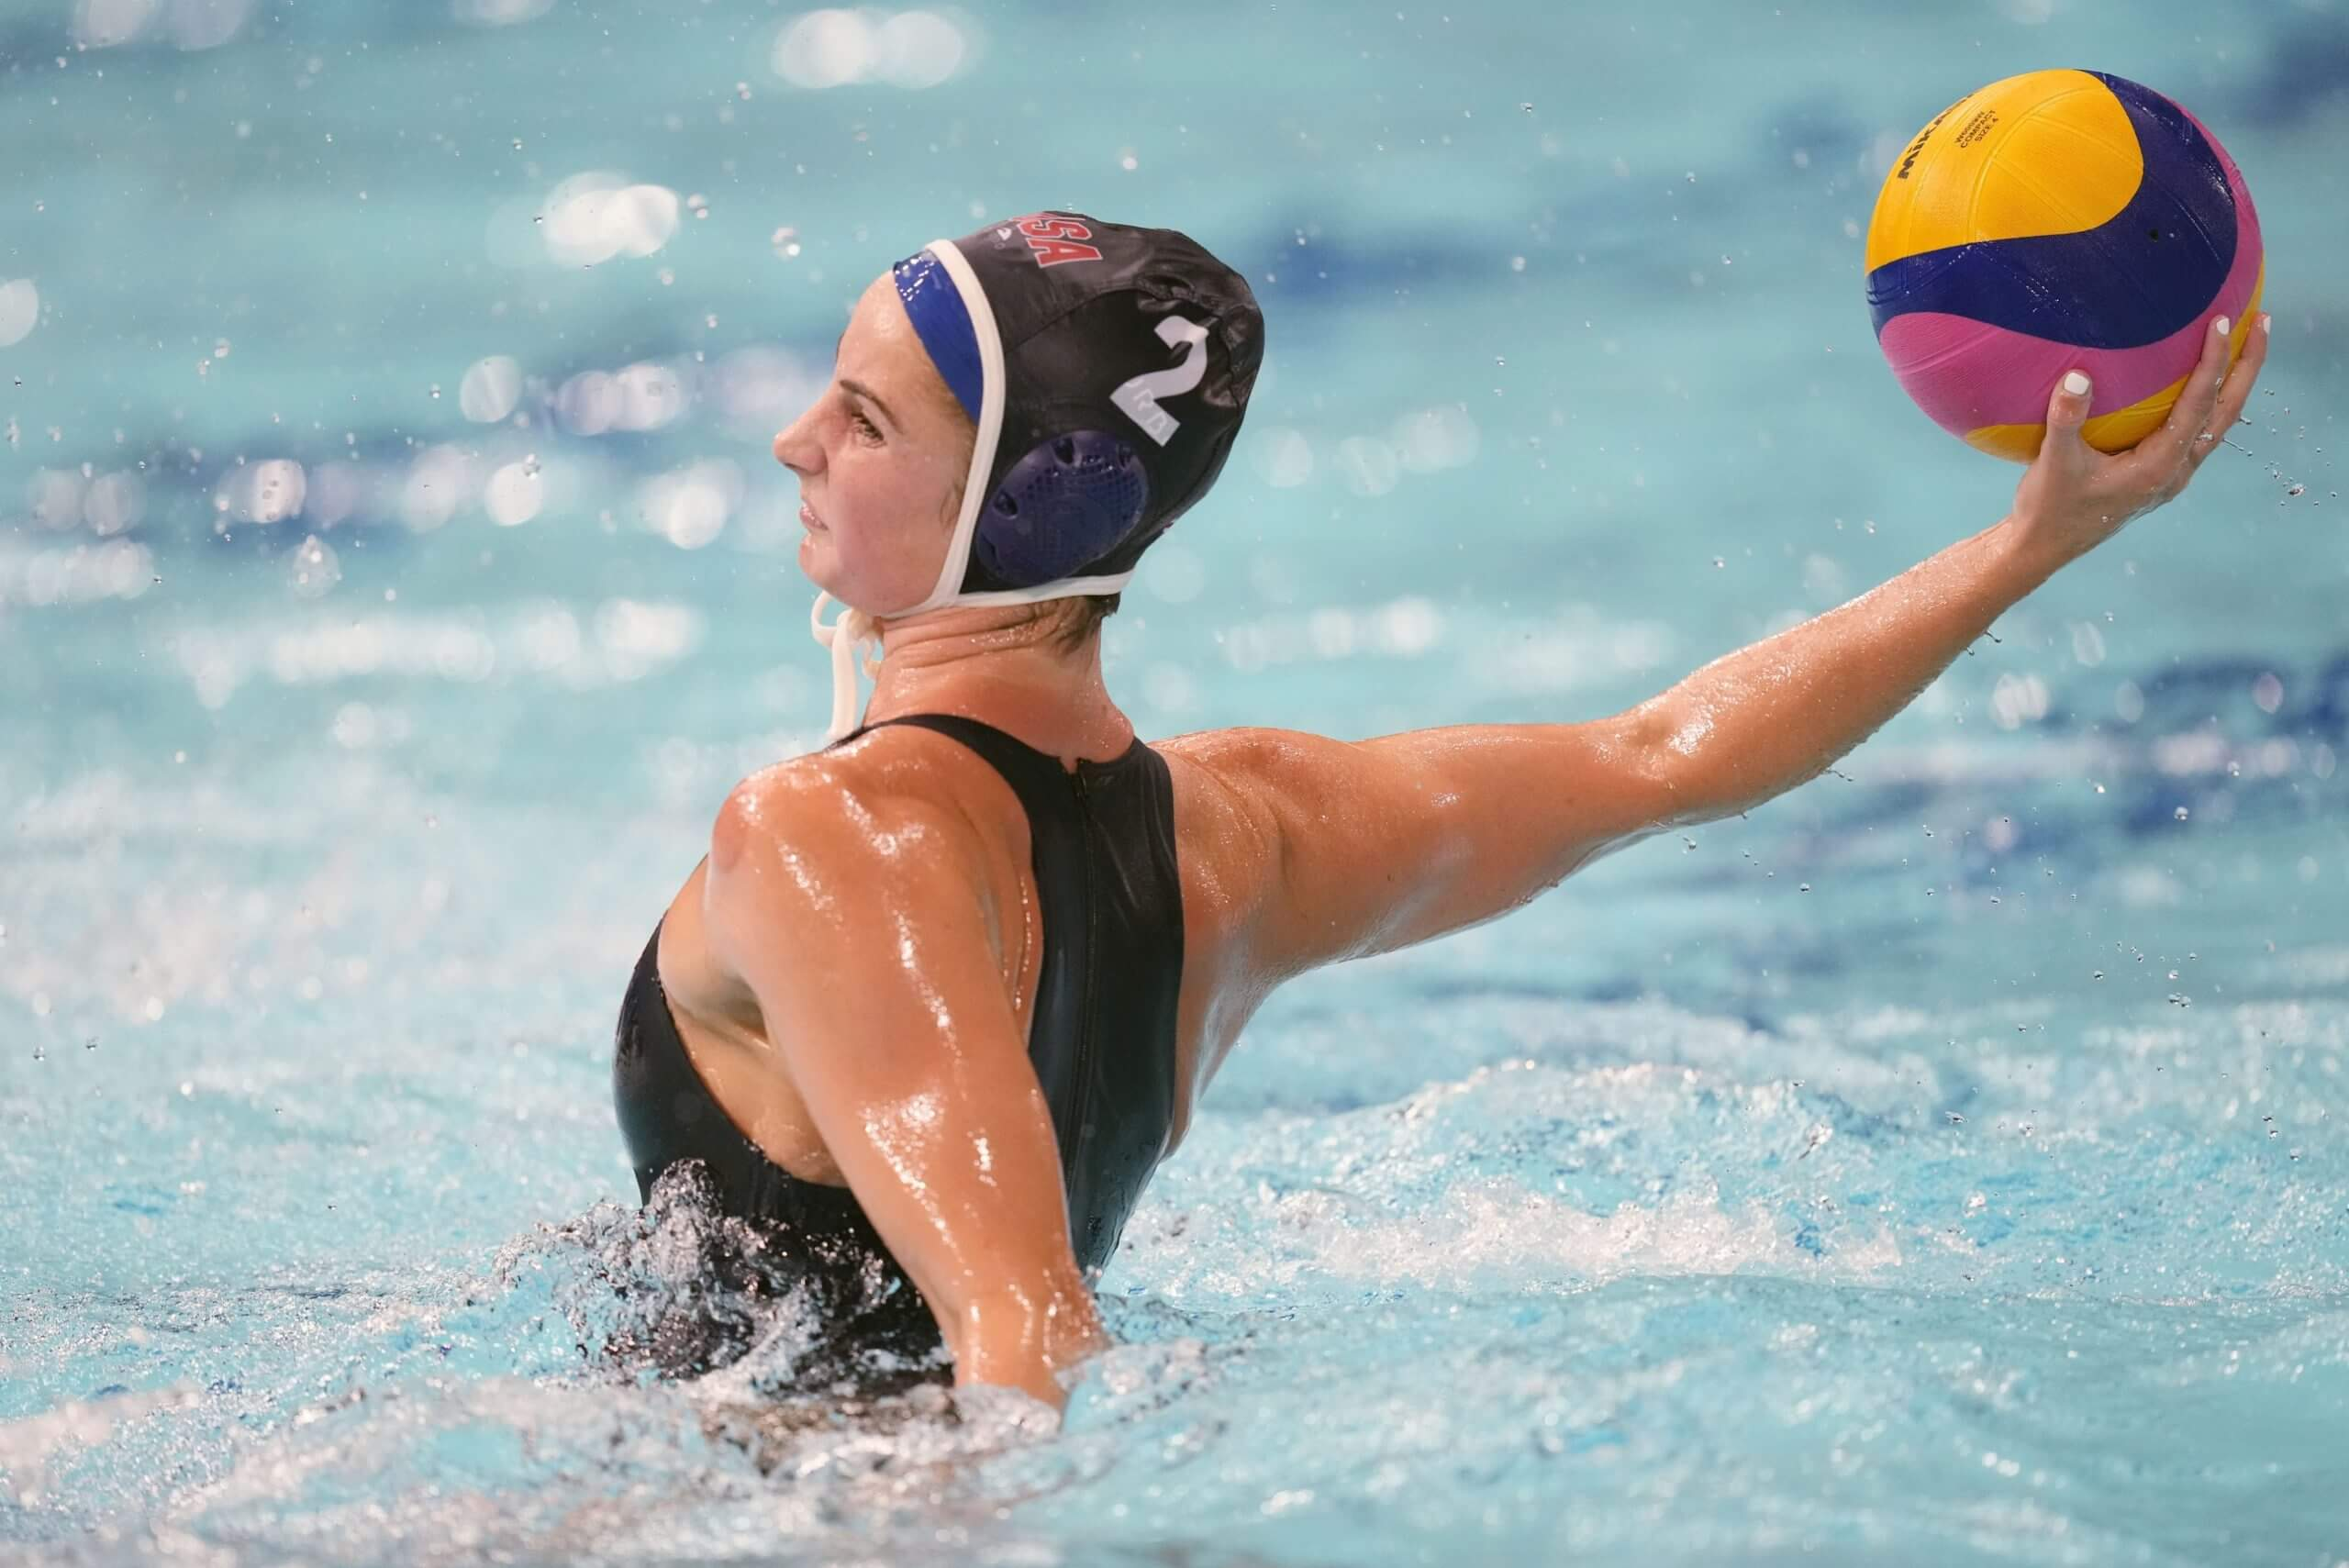 Jul 28, 2021; Tokyo, Japan; USA player Madeline Musselman (2) prepares to shoot against Hungary in a group B match during the Tokyo 2020 Olympic Summer Games at Tatsumi Water Polo Centre. Mandatory Credit: James Lang-USA TODAY Sports